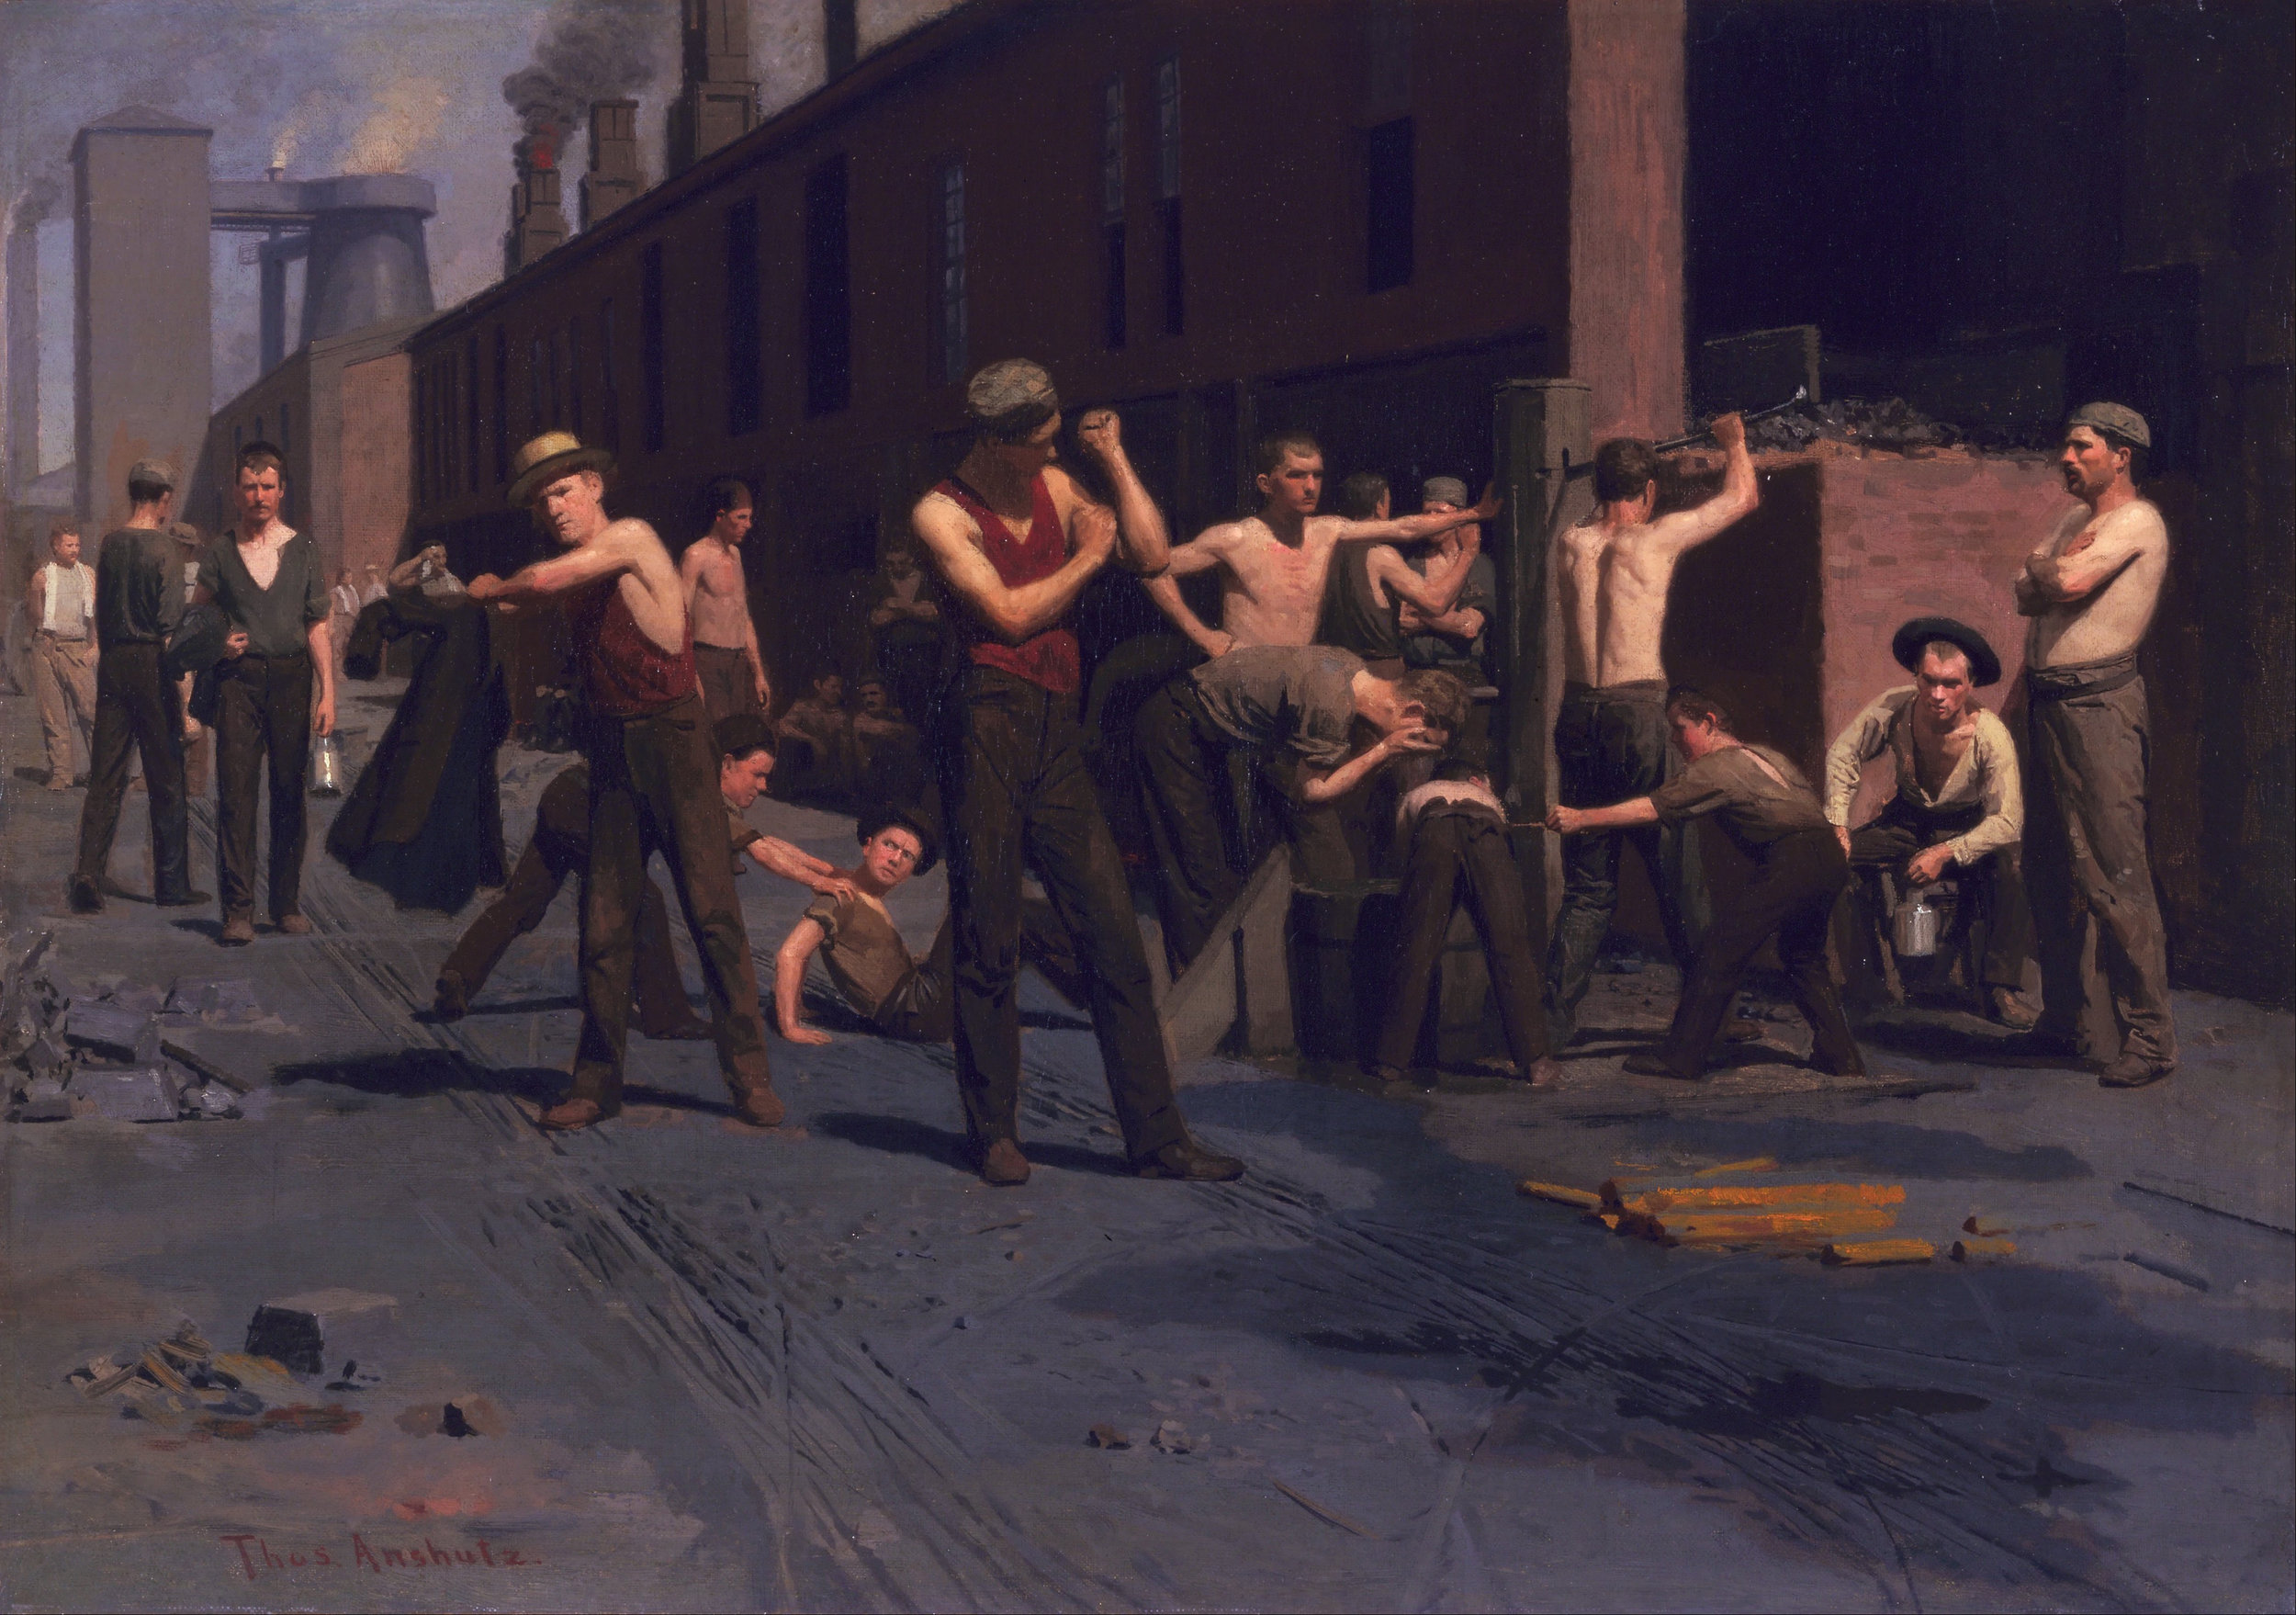 Thomas_Pollack_Anshutz_-_The_Ironworkers'_Noontime_-_Google_Art_Project.jpg